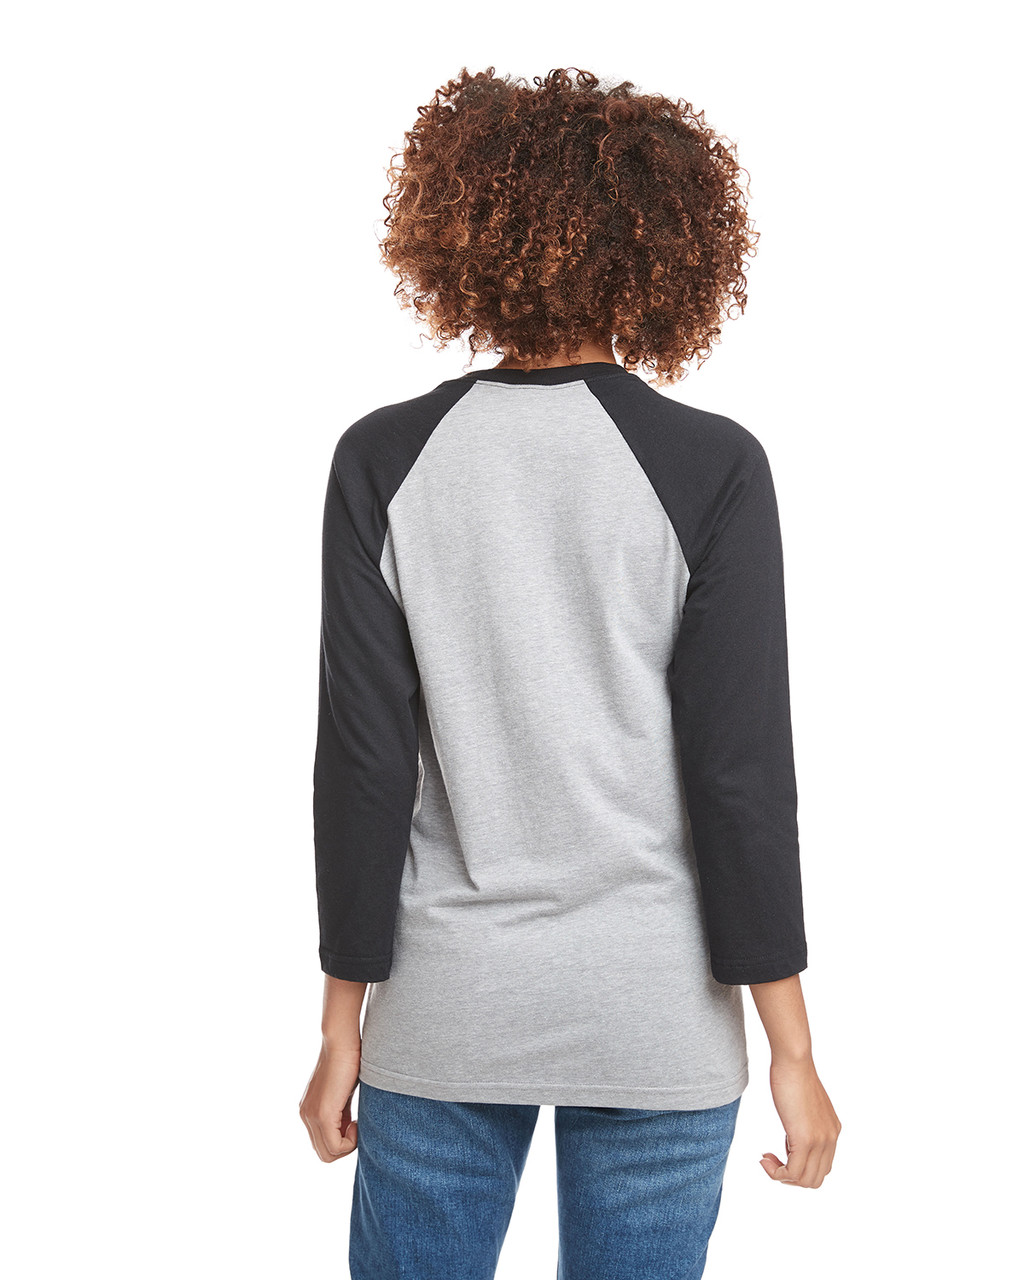 Black/Dark Heather Grey - Back, 6251 Next Level Unisex CVC 3/4 Sleeve Raglan Baseball T-Shirt | BlankClothing.ca